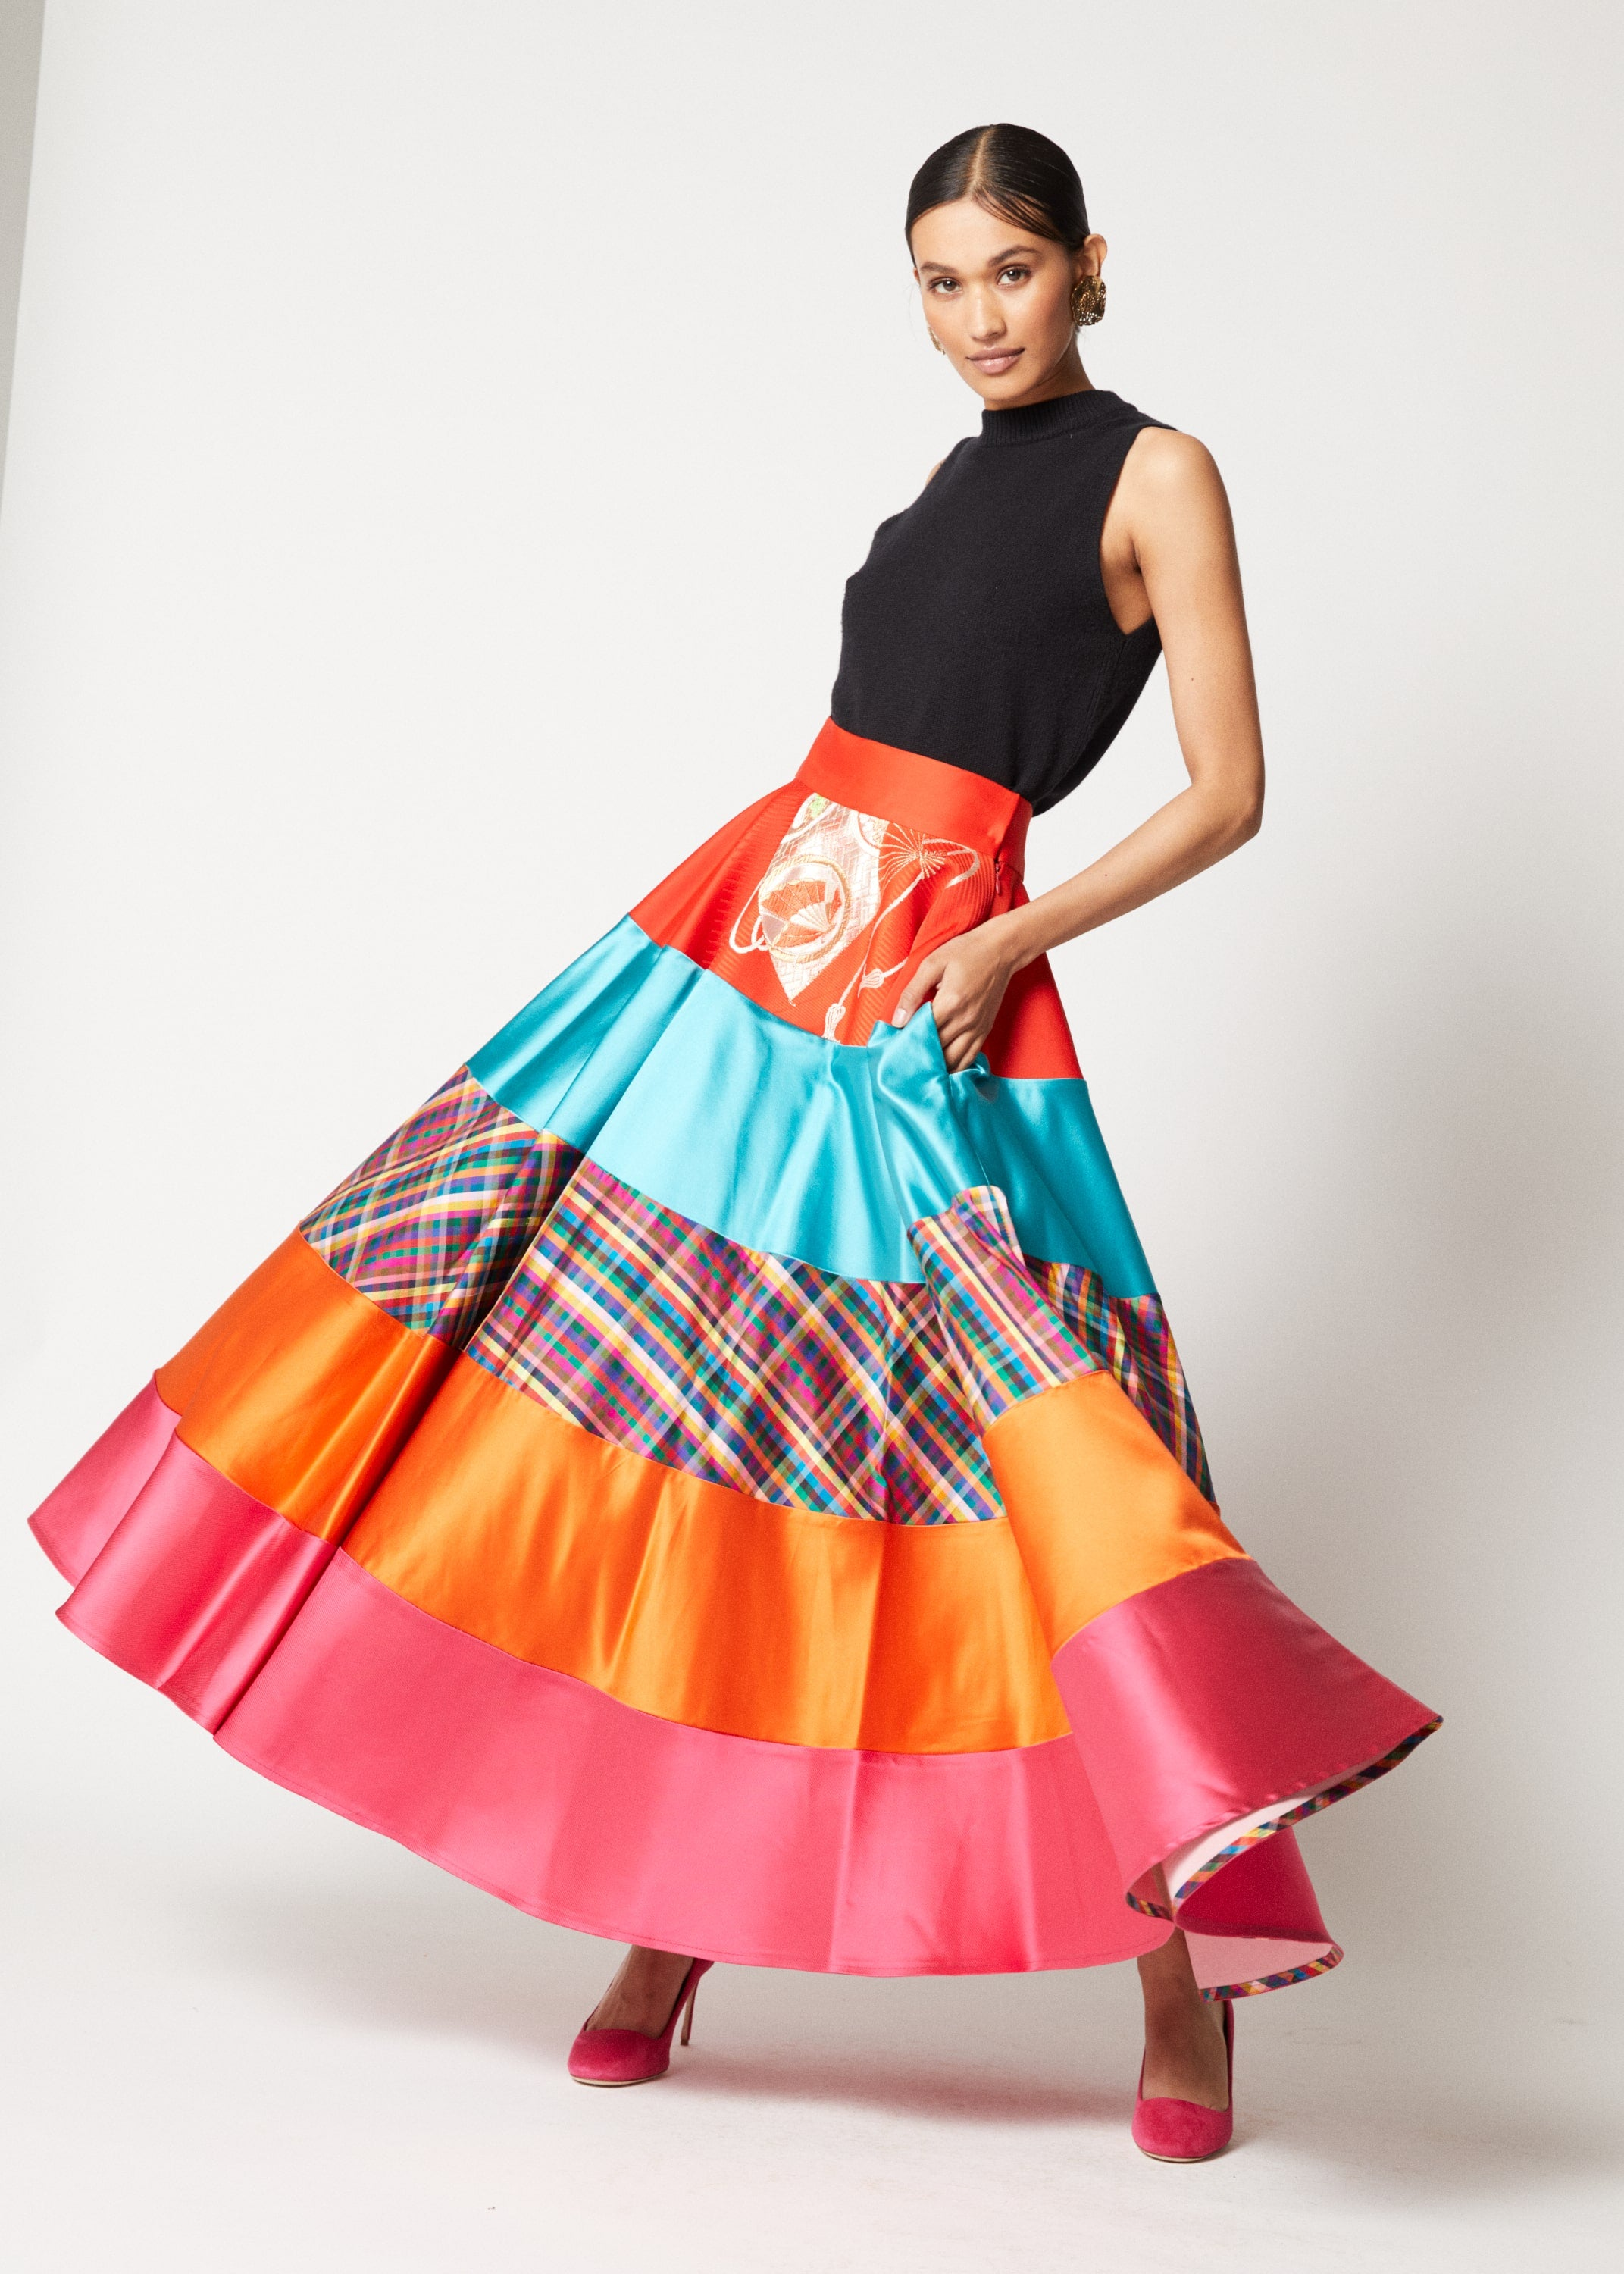 One-of-a-kind Circle Segment Skirt